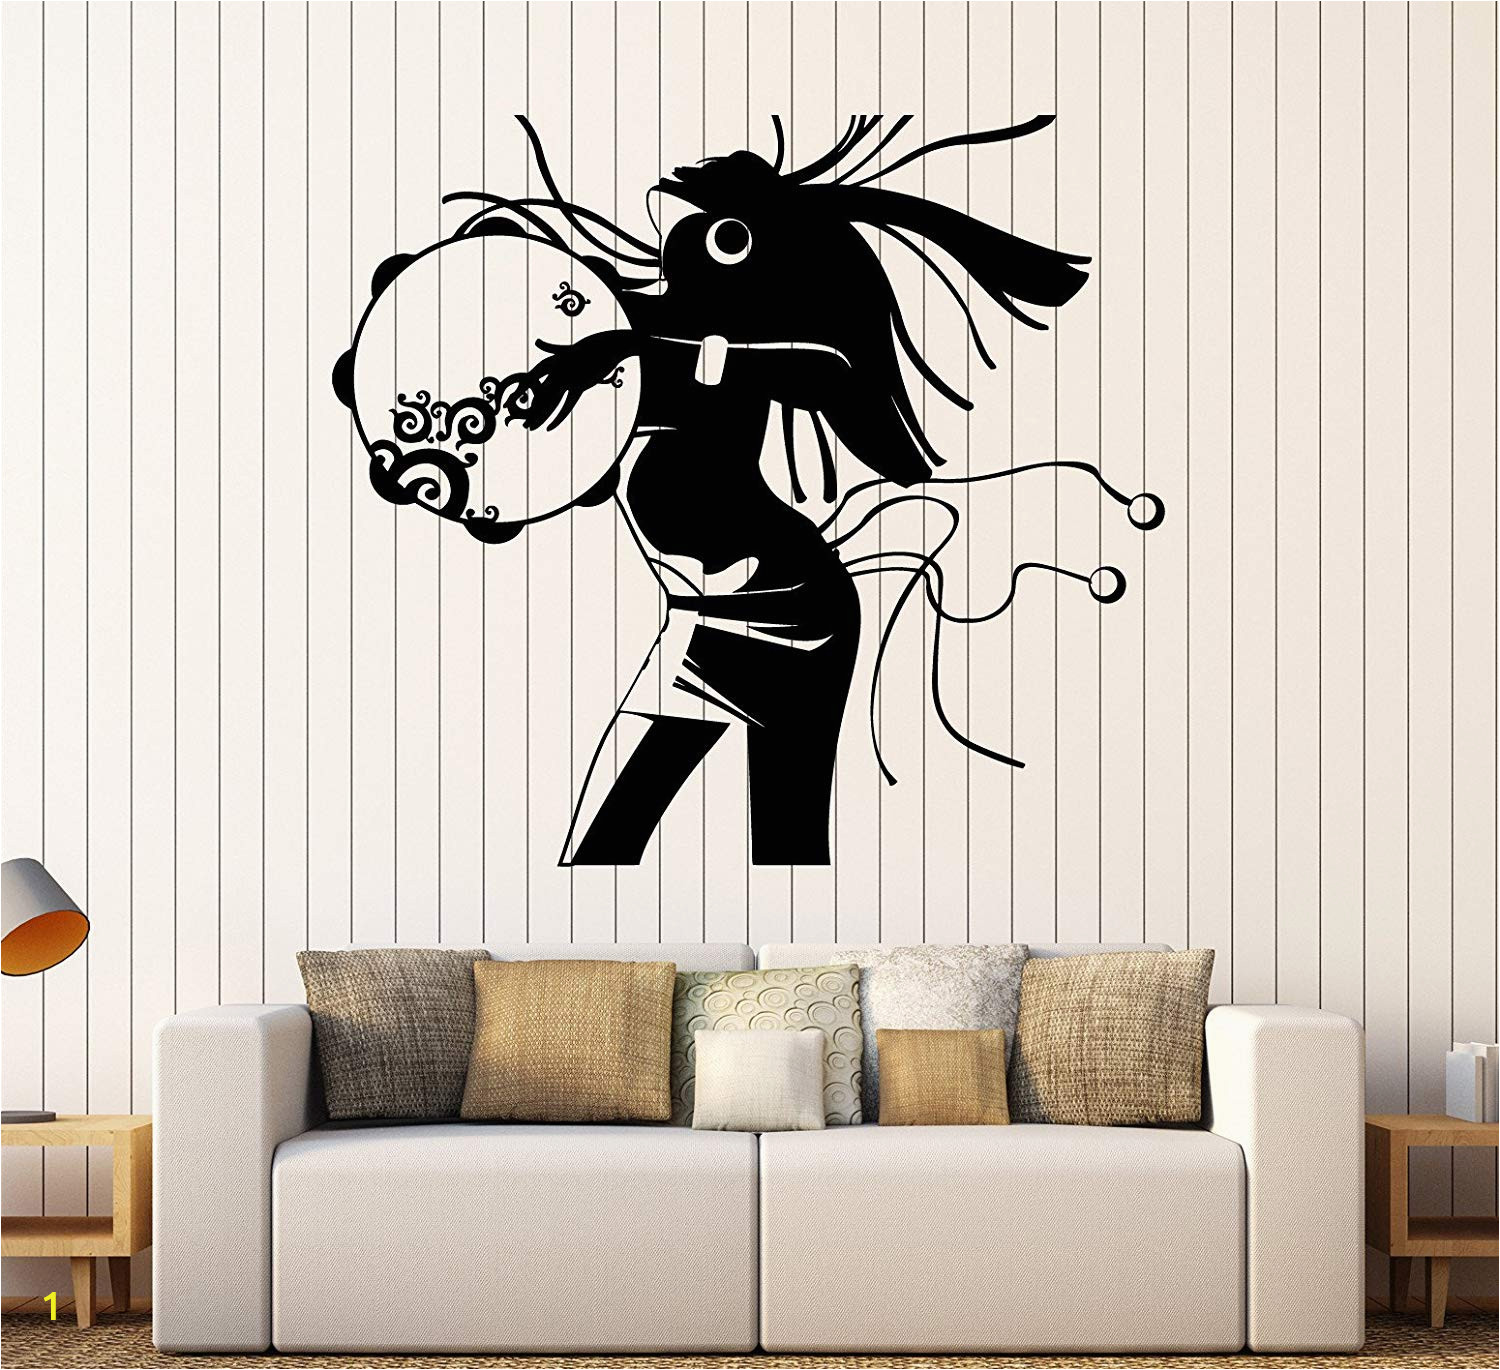 Giant Wall Mural Decals Amazon Vinyl Wall Decal African Woman Ethnic Style